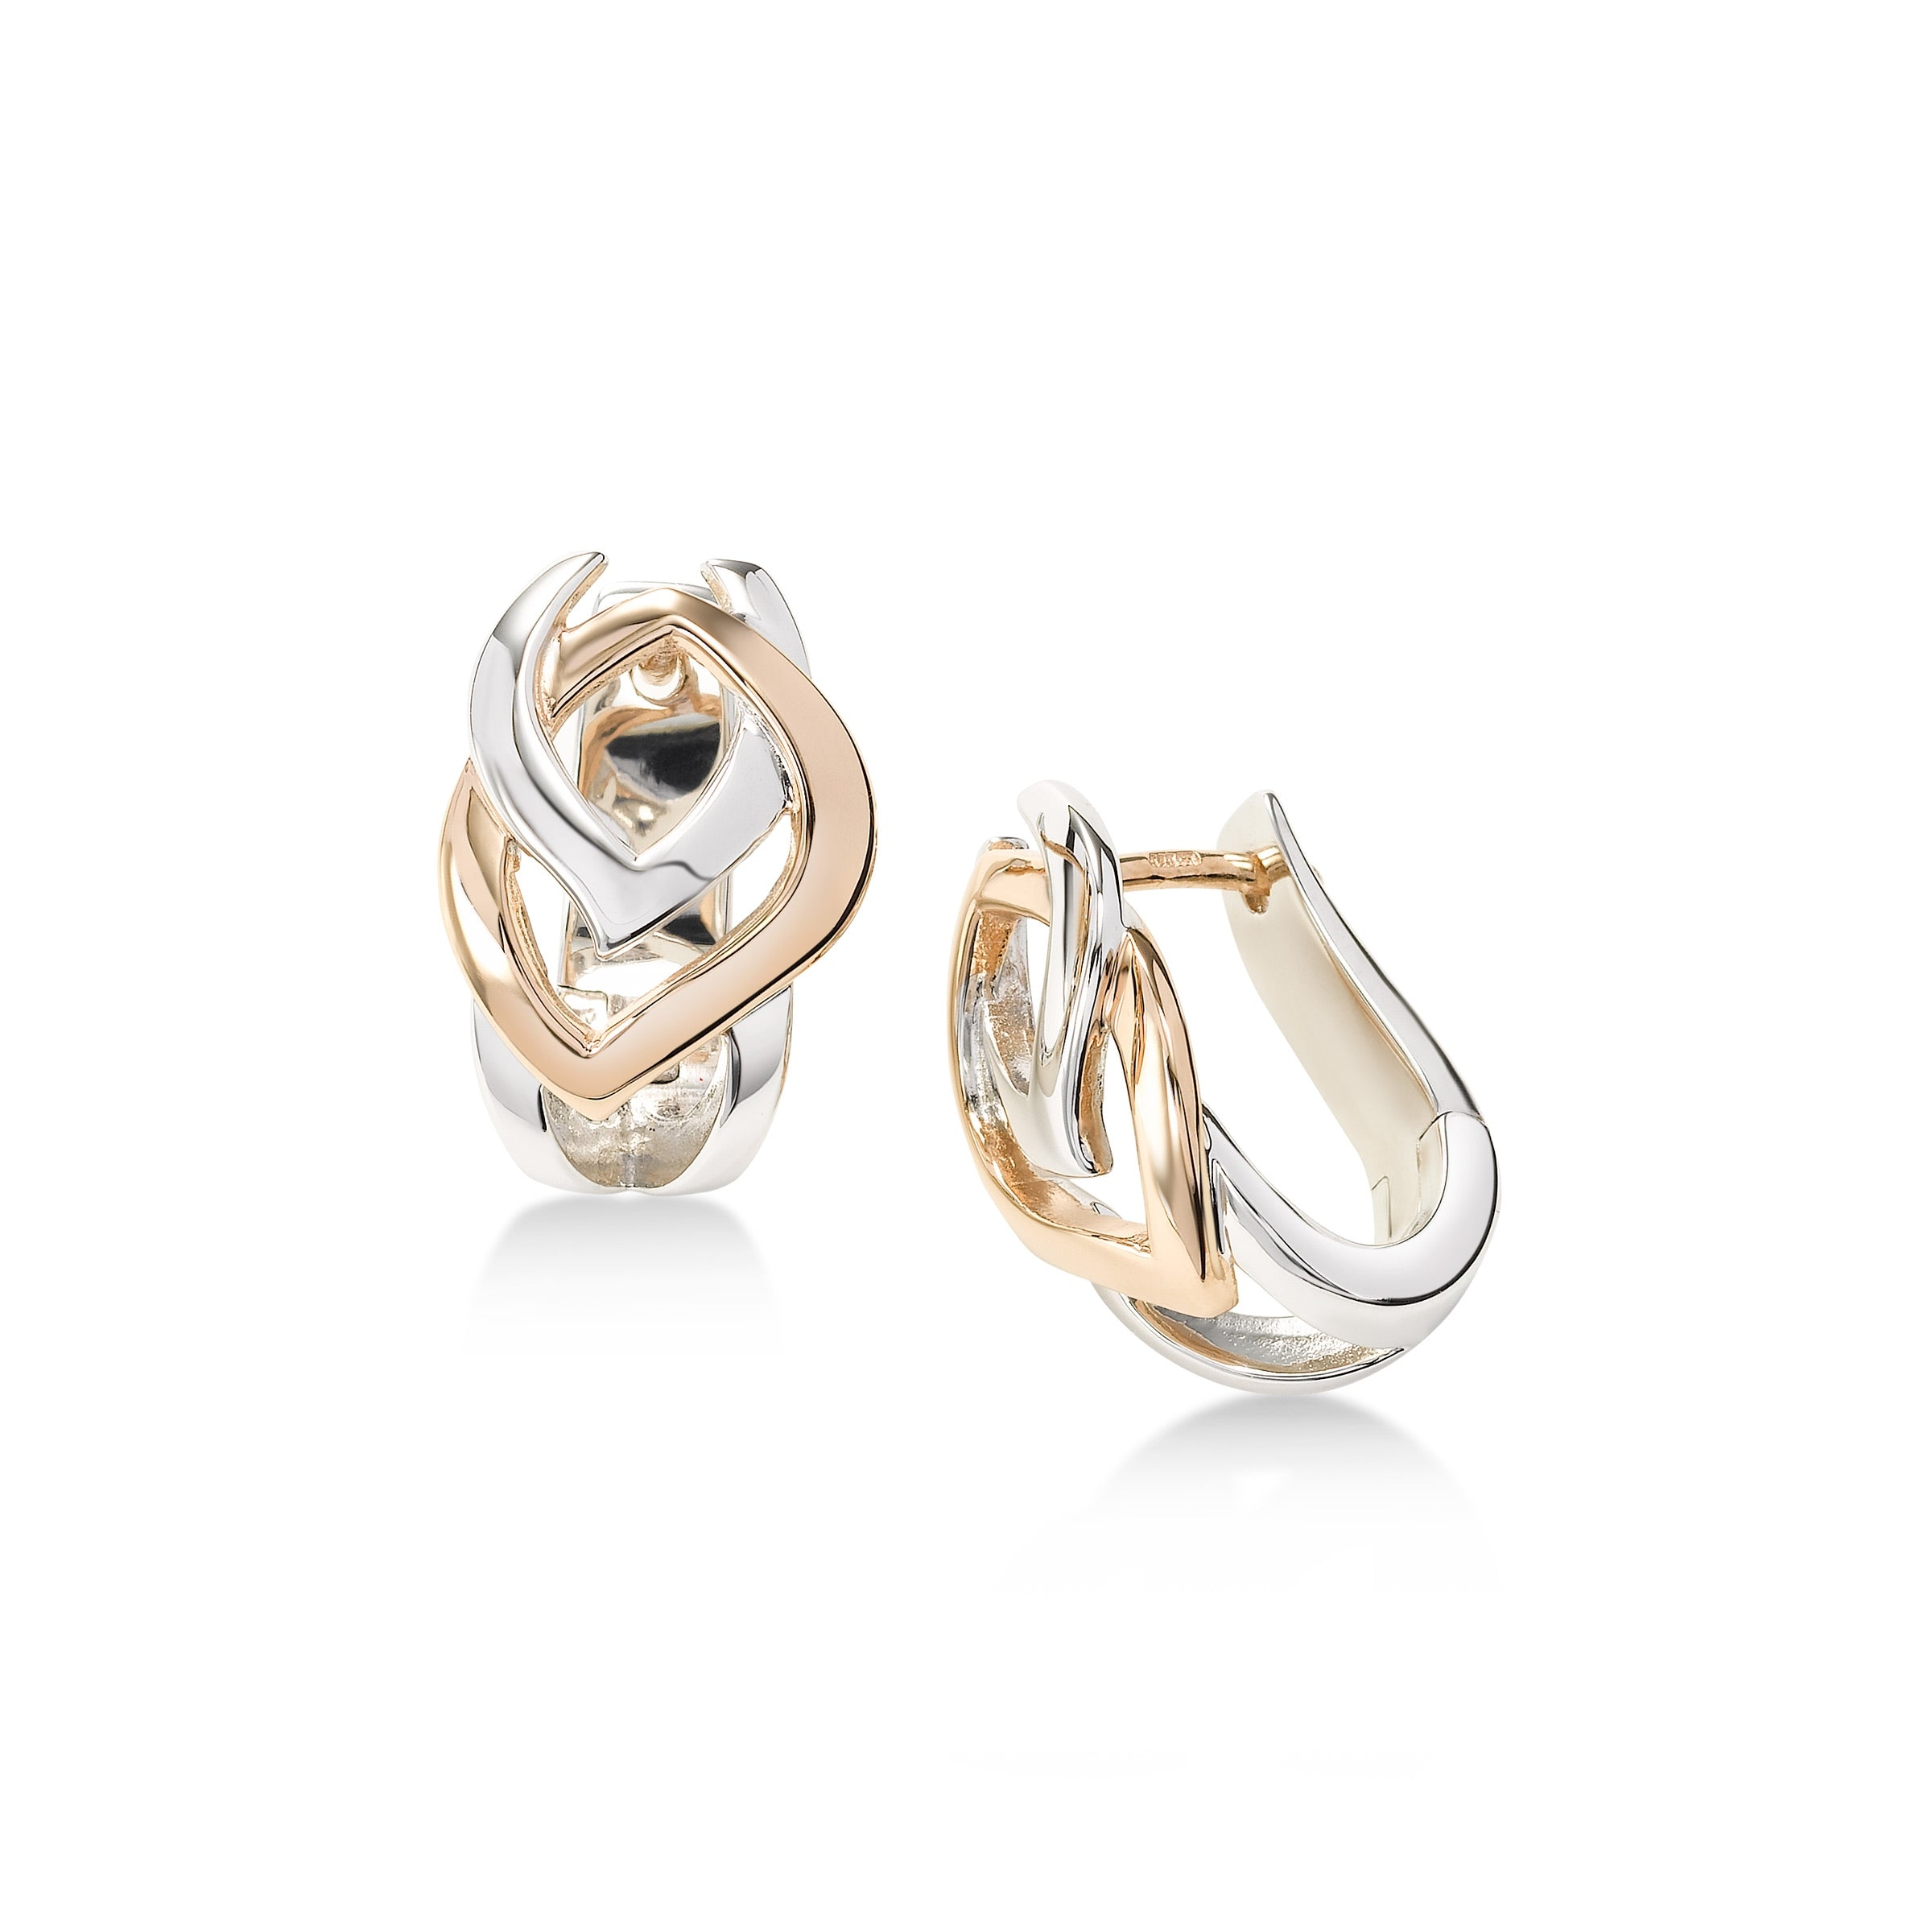 Two Tone Interlocking Link Earrings, Sterling Silver with Rose Gold Plating